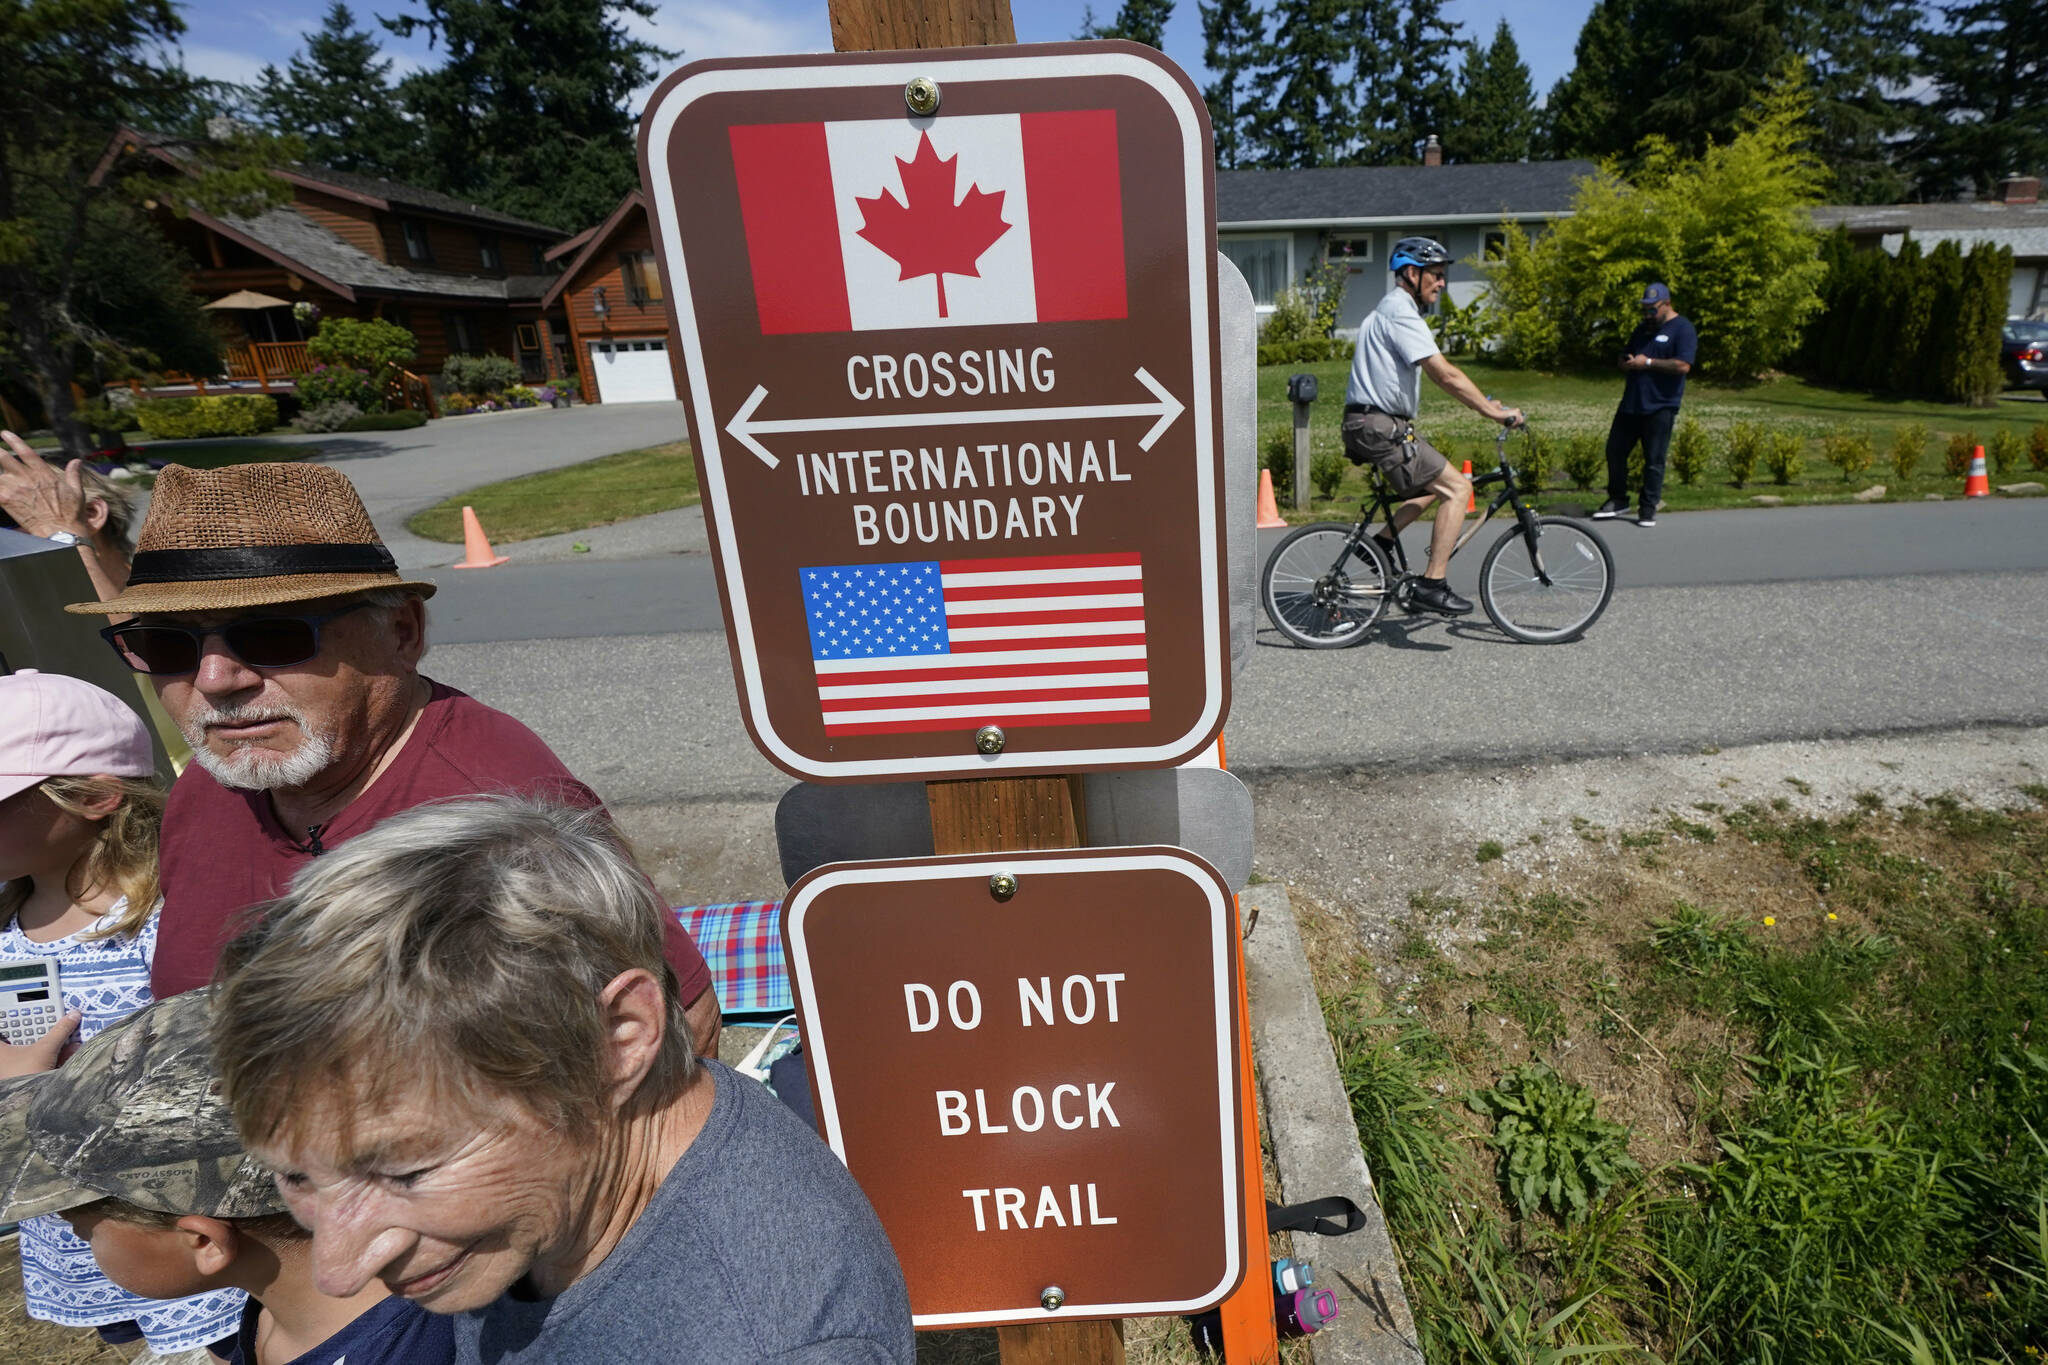 A family visits across the U.S.-Canada border at the Peace Arch Historical State Park as a cyclist rides past on the Canadian side, Monday, Aug. 9, 2021, in Blaine, Wash. A month after easing border restrictions for American citizens, Canada is following suit for other international travellers. (AP Photo/Elaine Thompson)